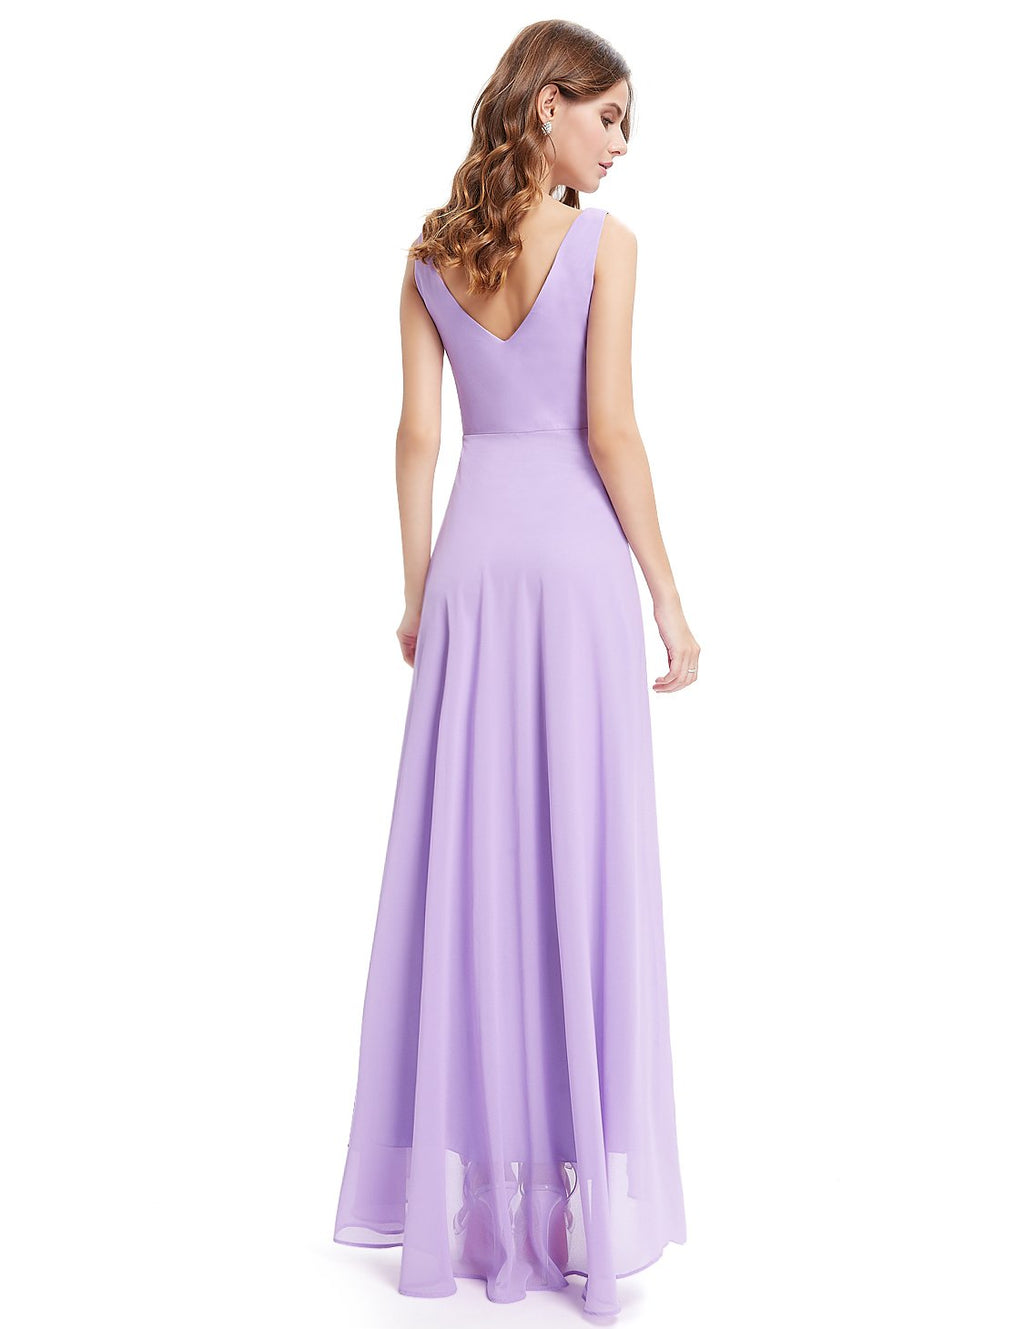 High Low Party Dress Light Purple